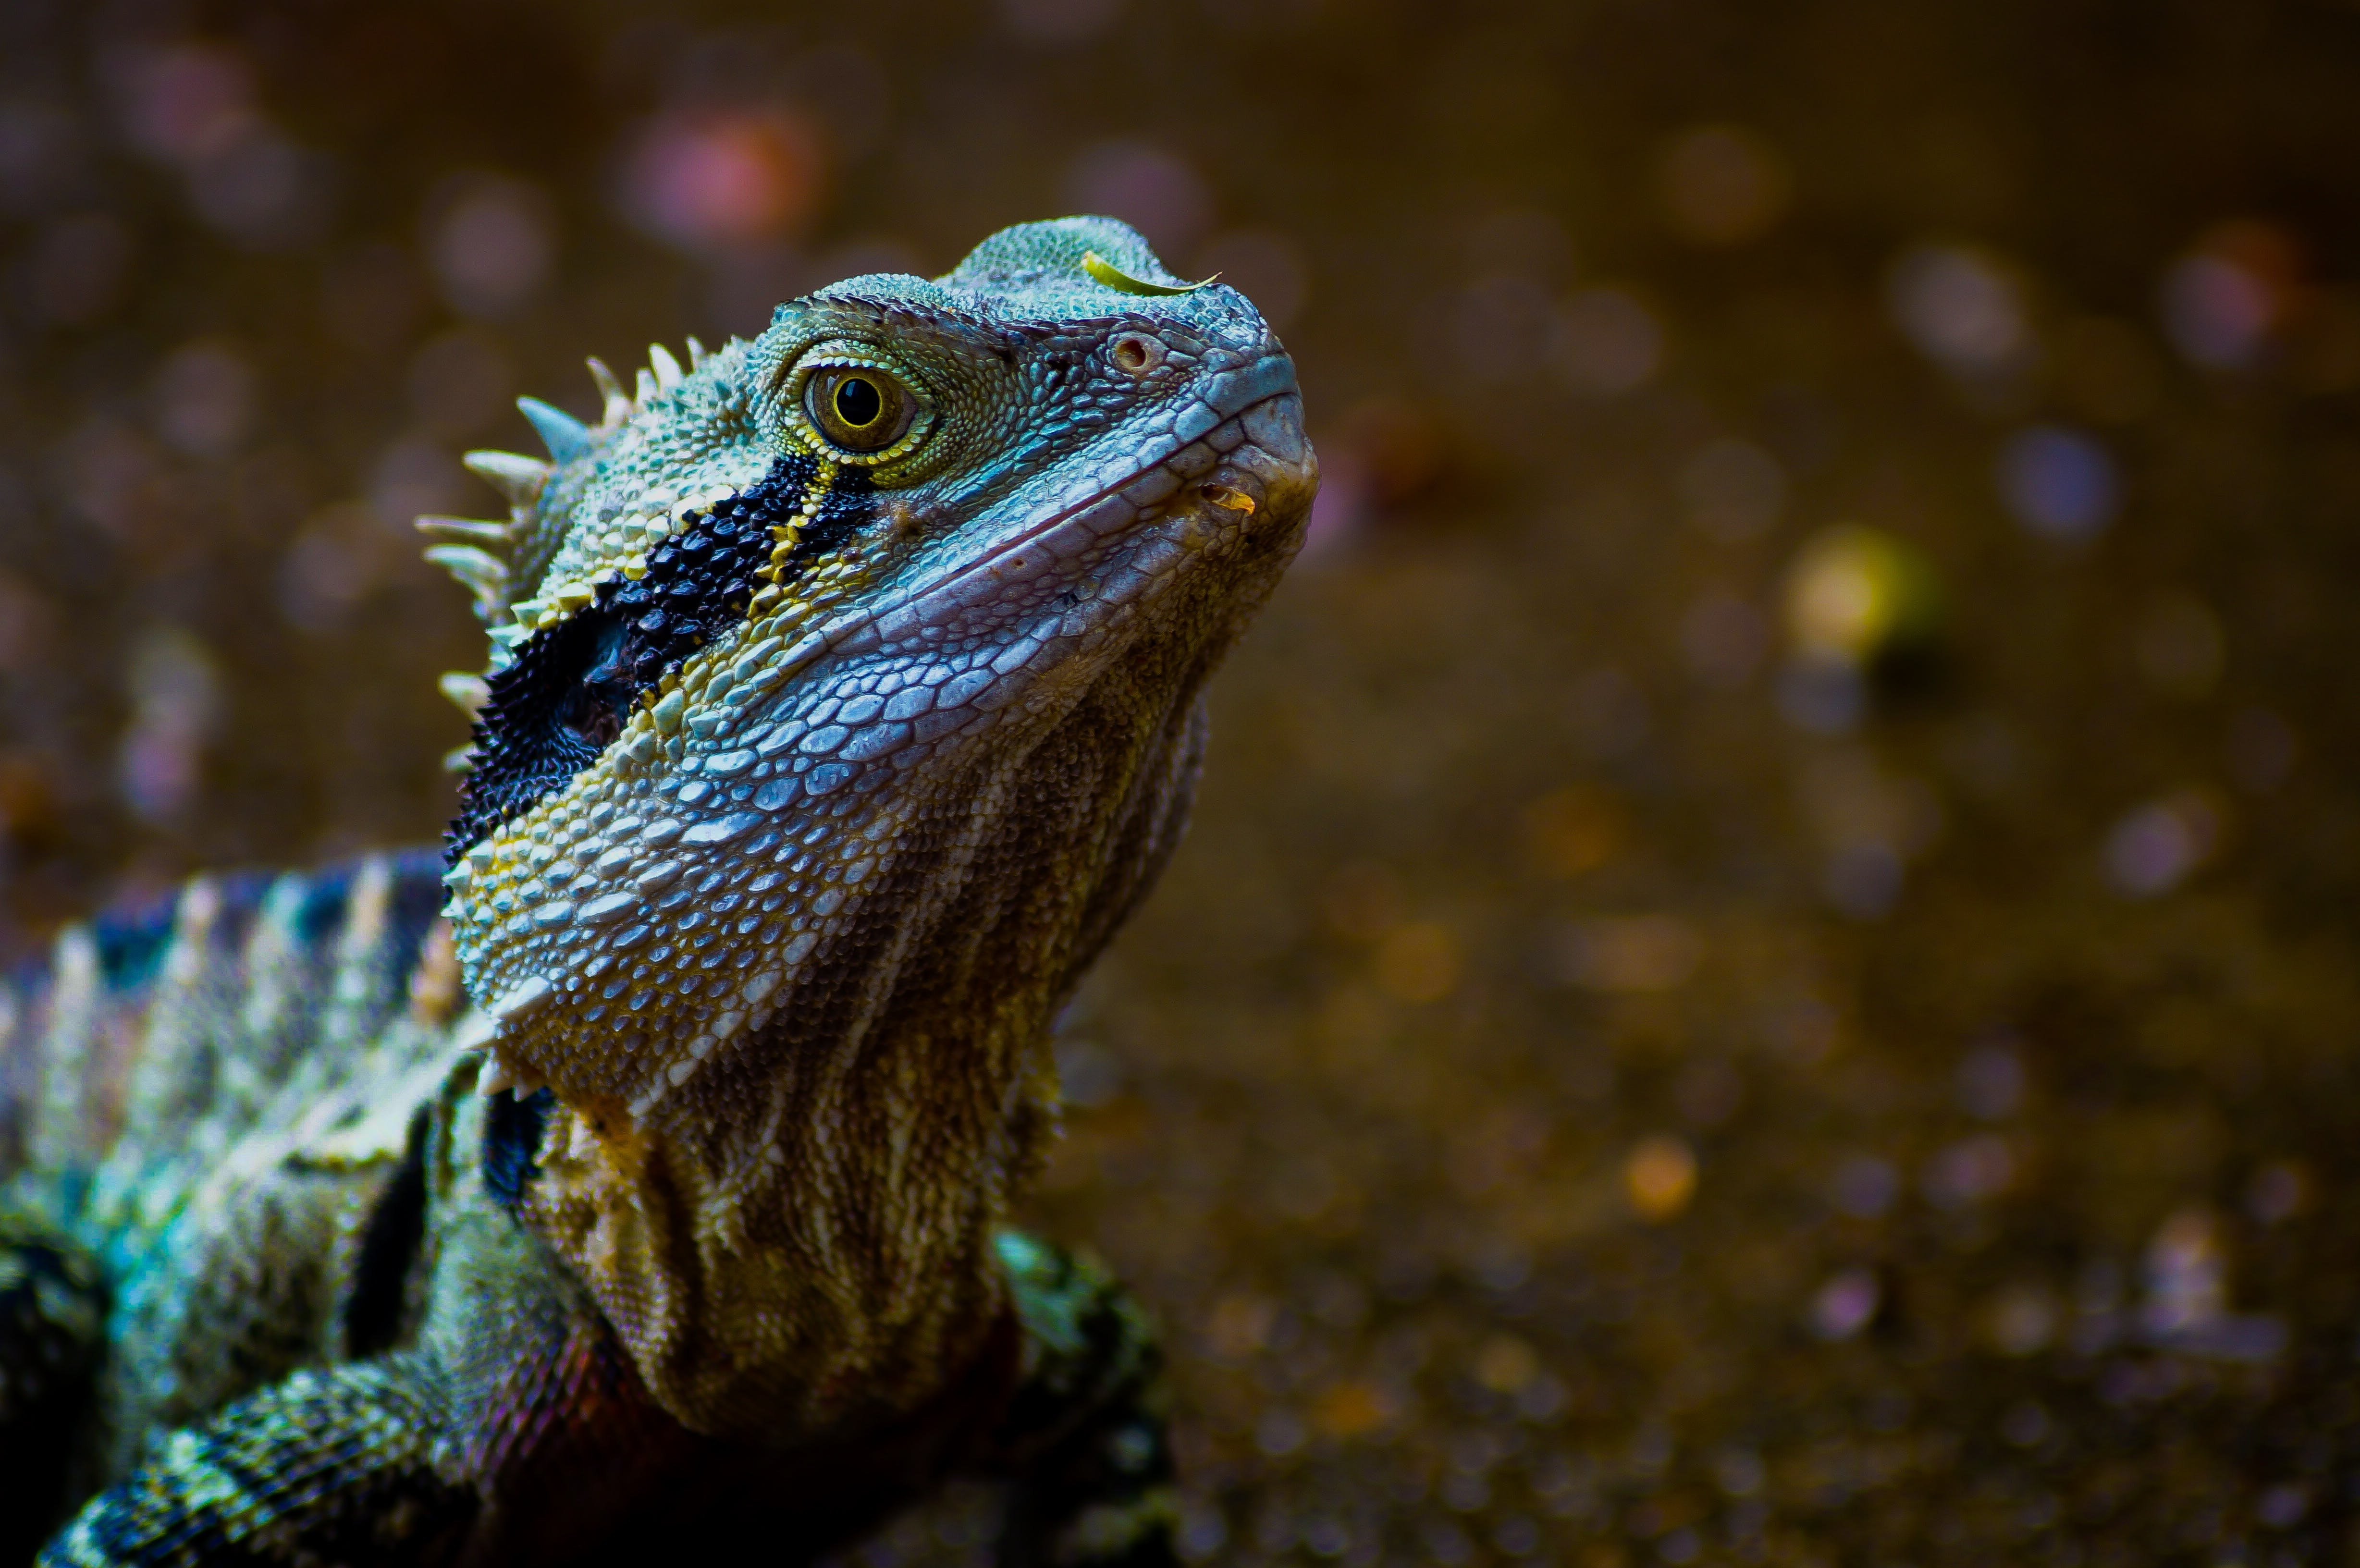 animal, Australian water dragon, close-up